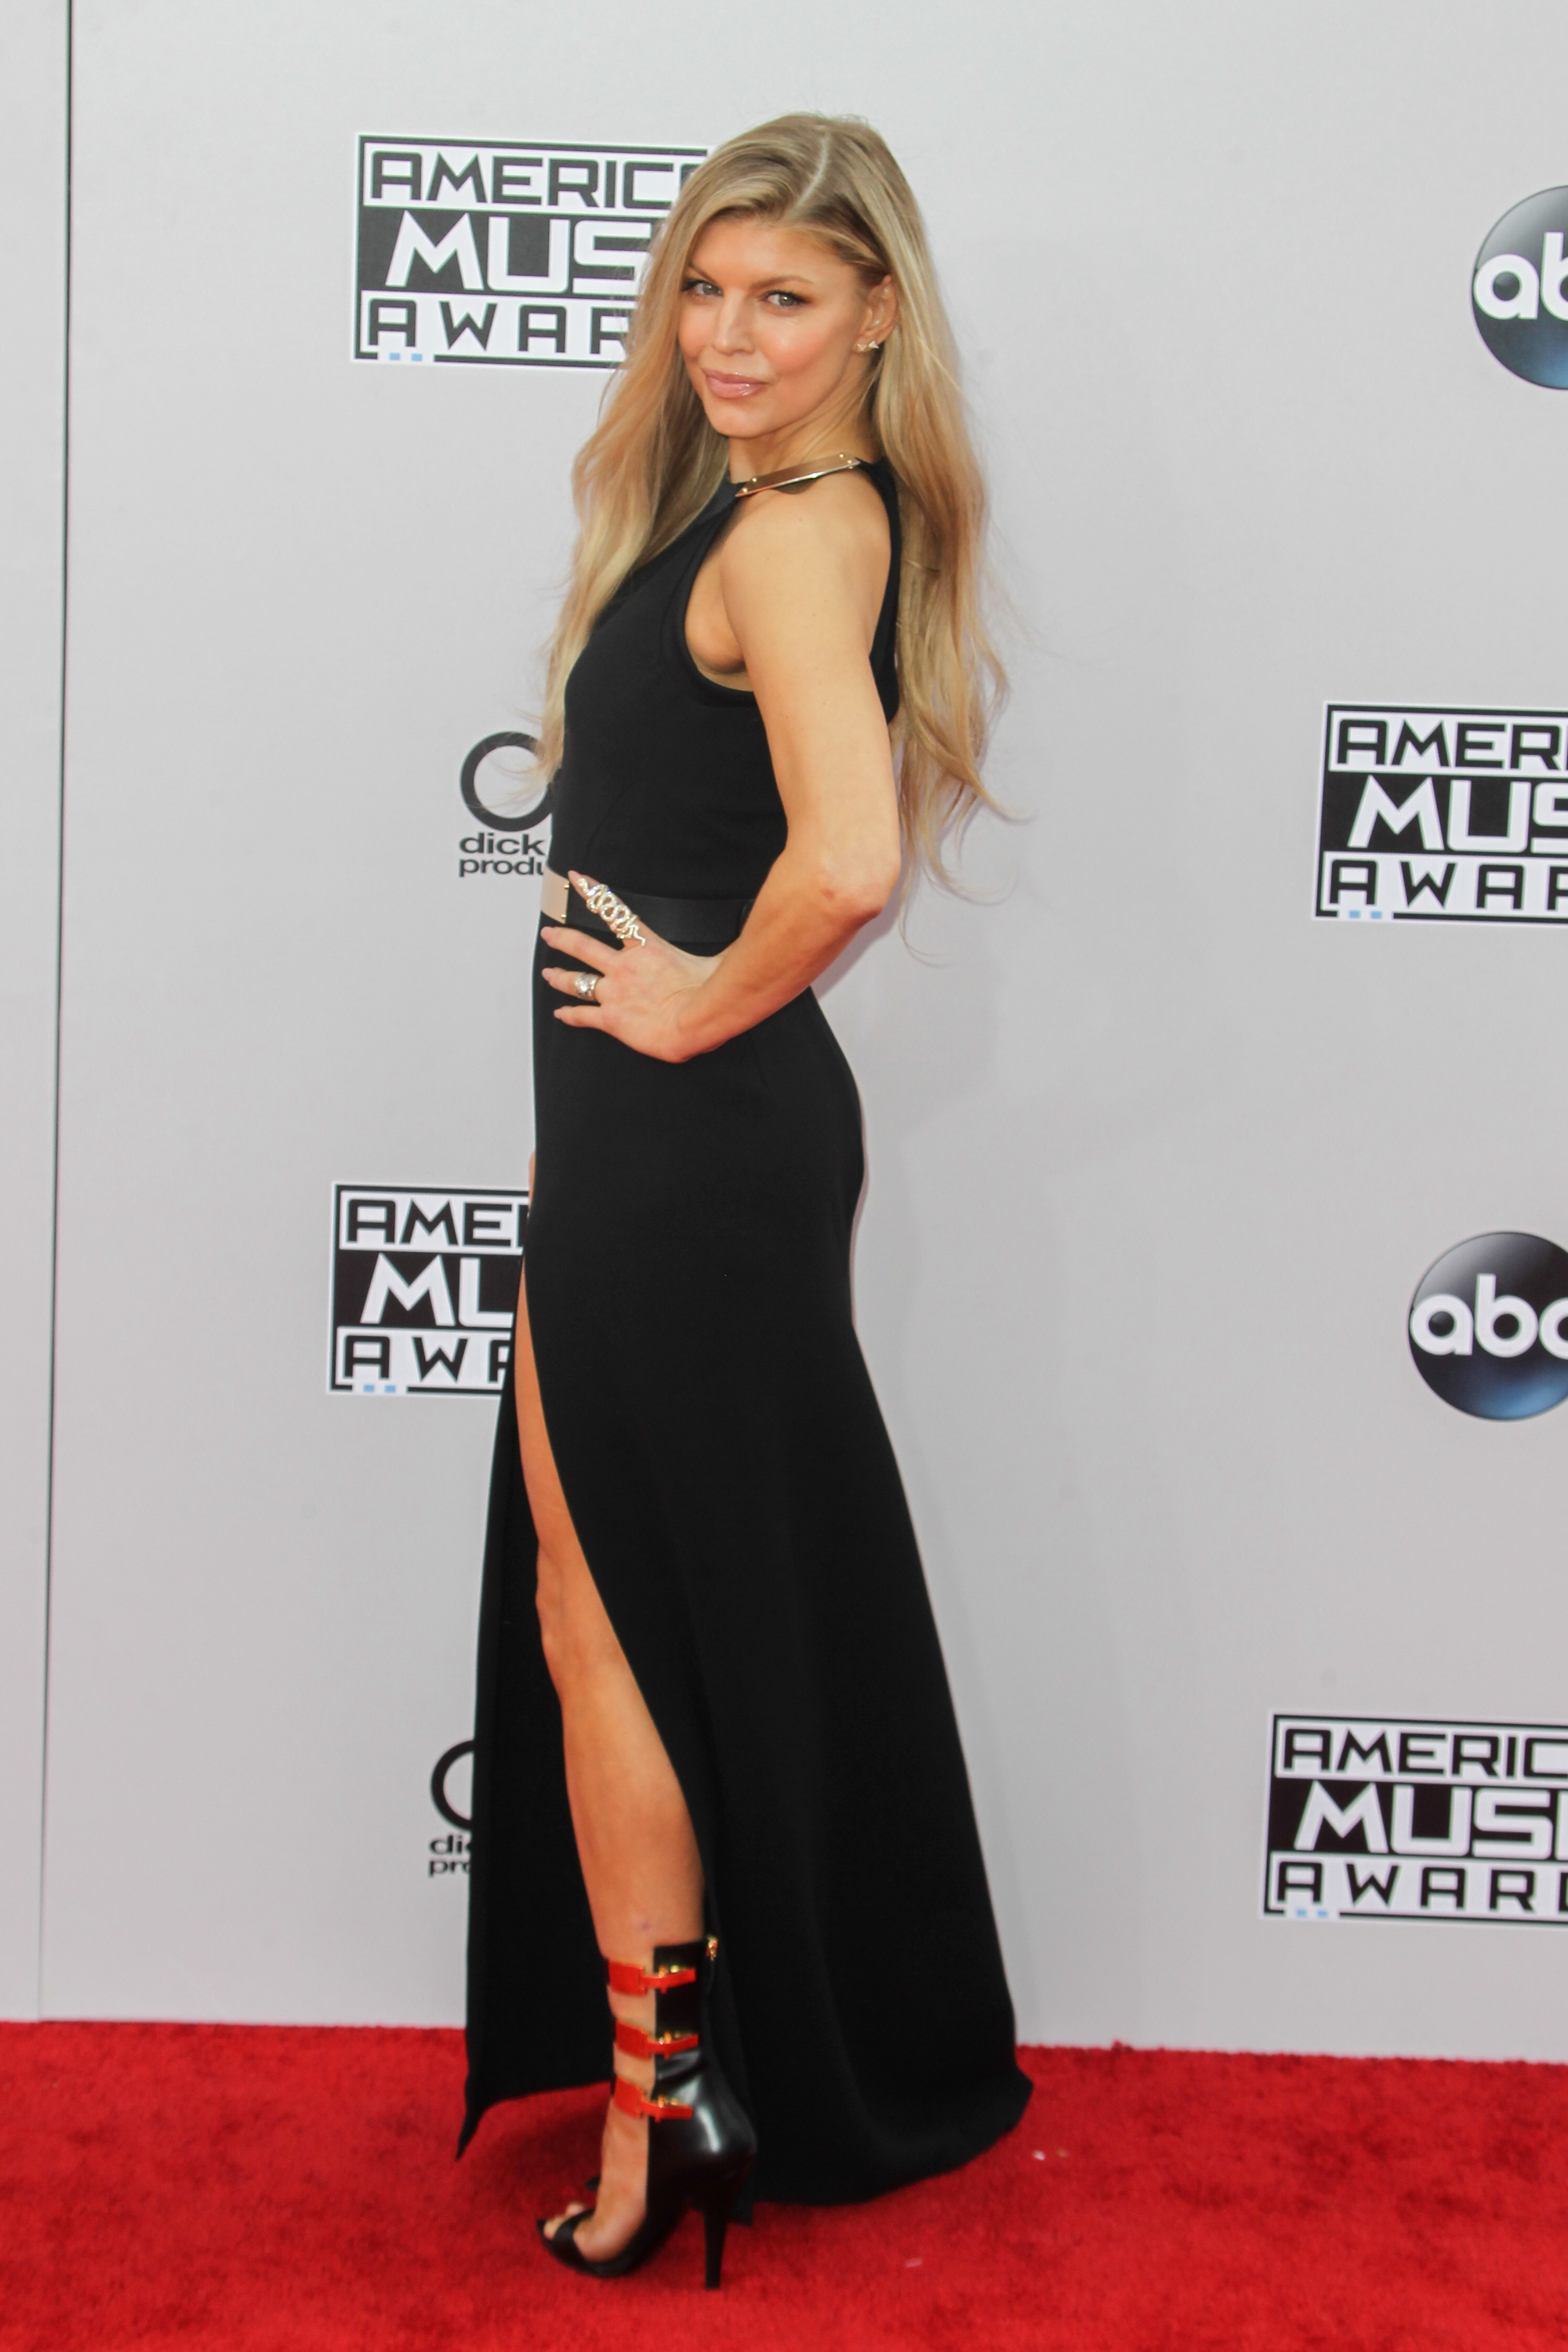 American Music Awards (AMA) 2014 held at Nokia Theatre LA Live - Arrivals Featuring: Fergie Where: Los Angeles, California, United States When: 23 Nov 2014 Credit: FayesVision/WENN.com